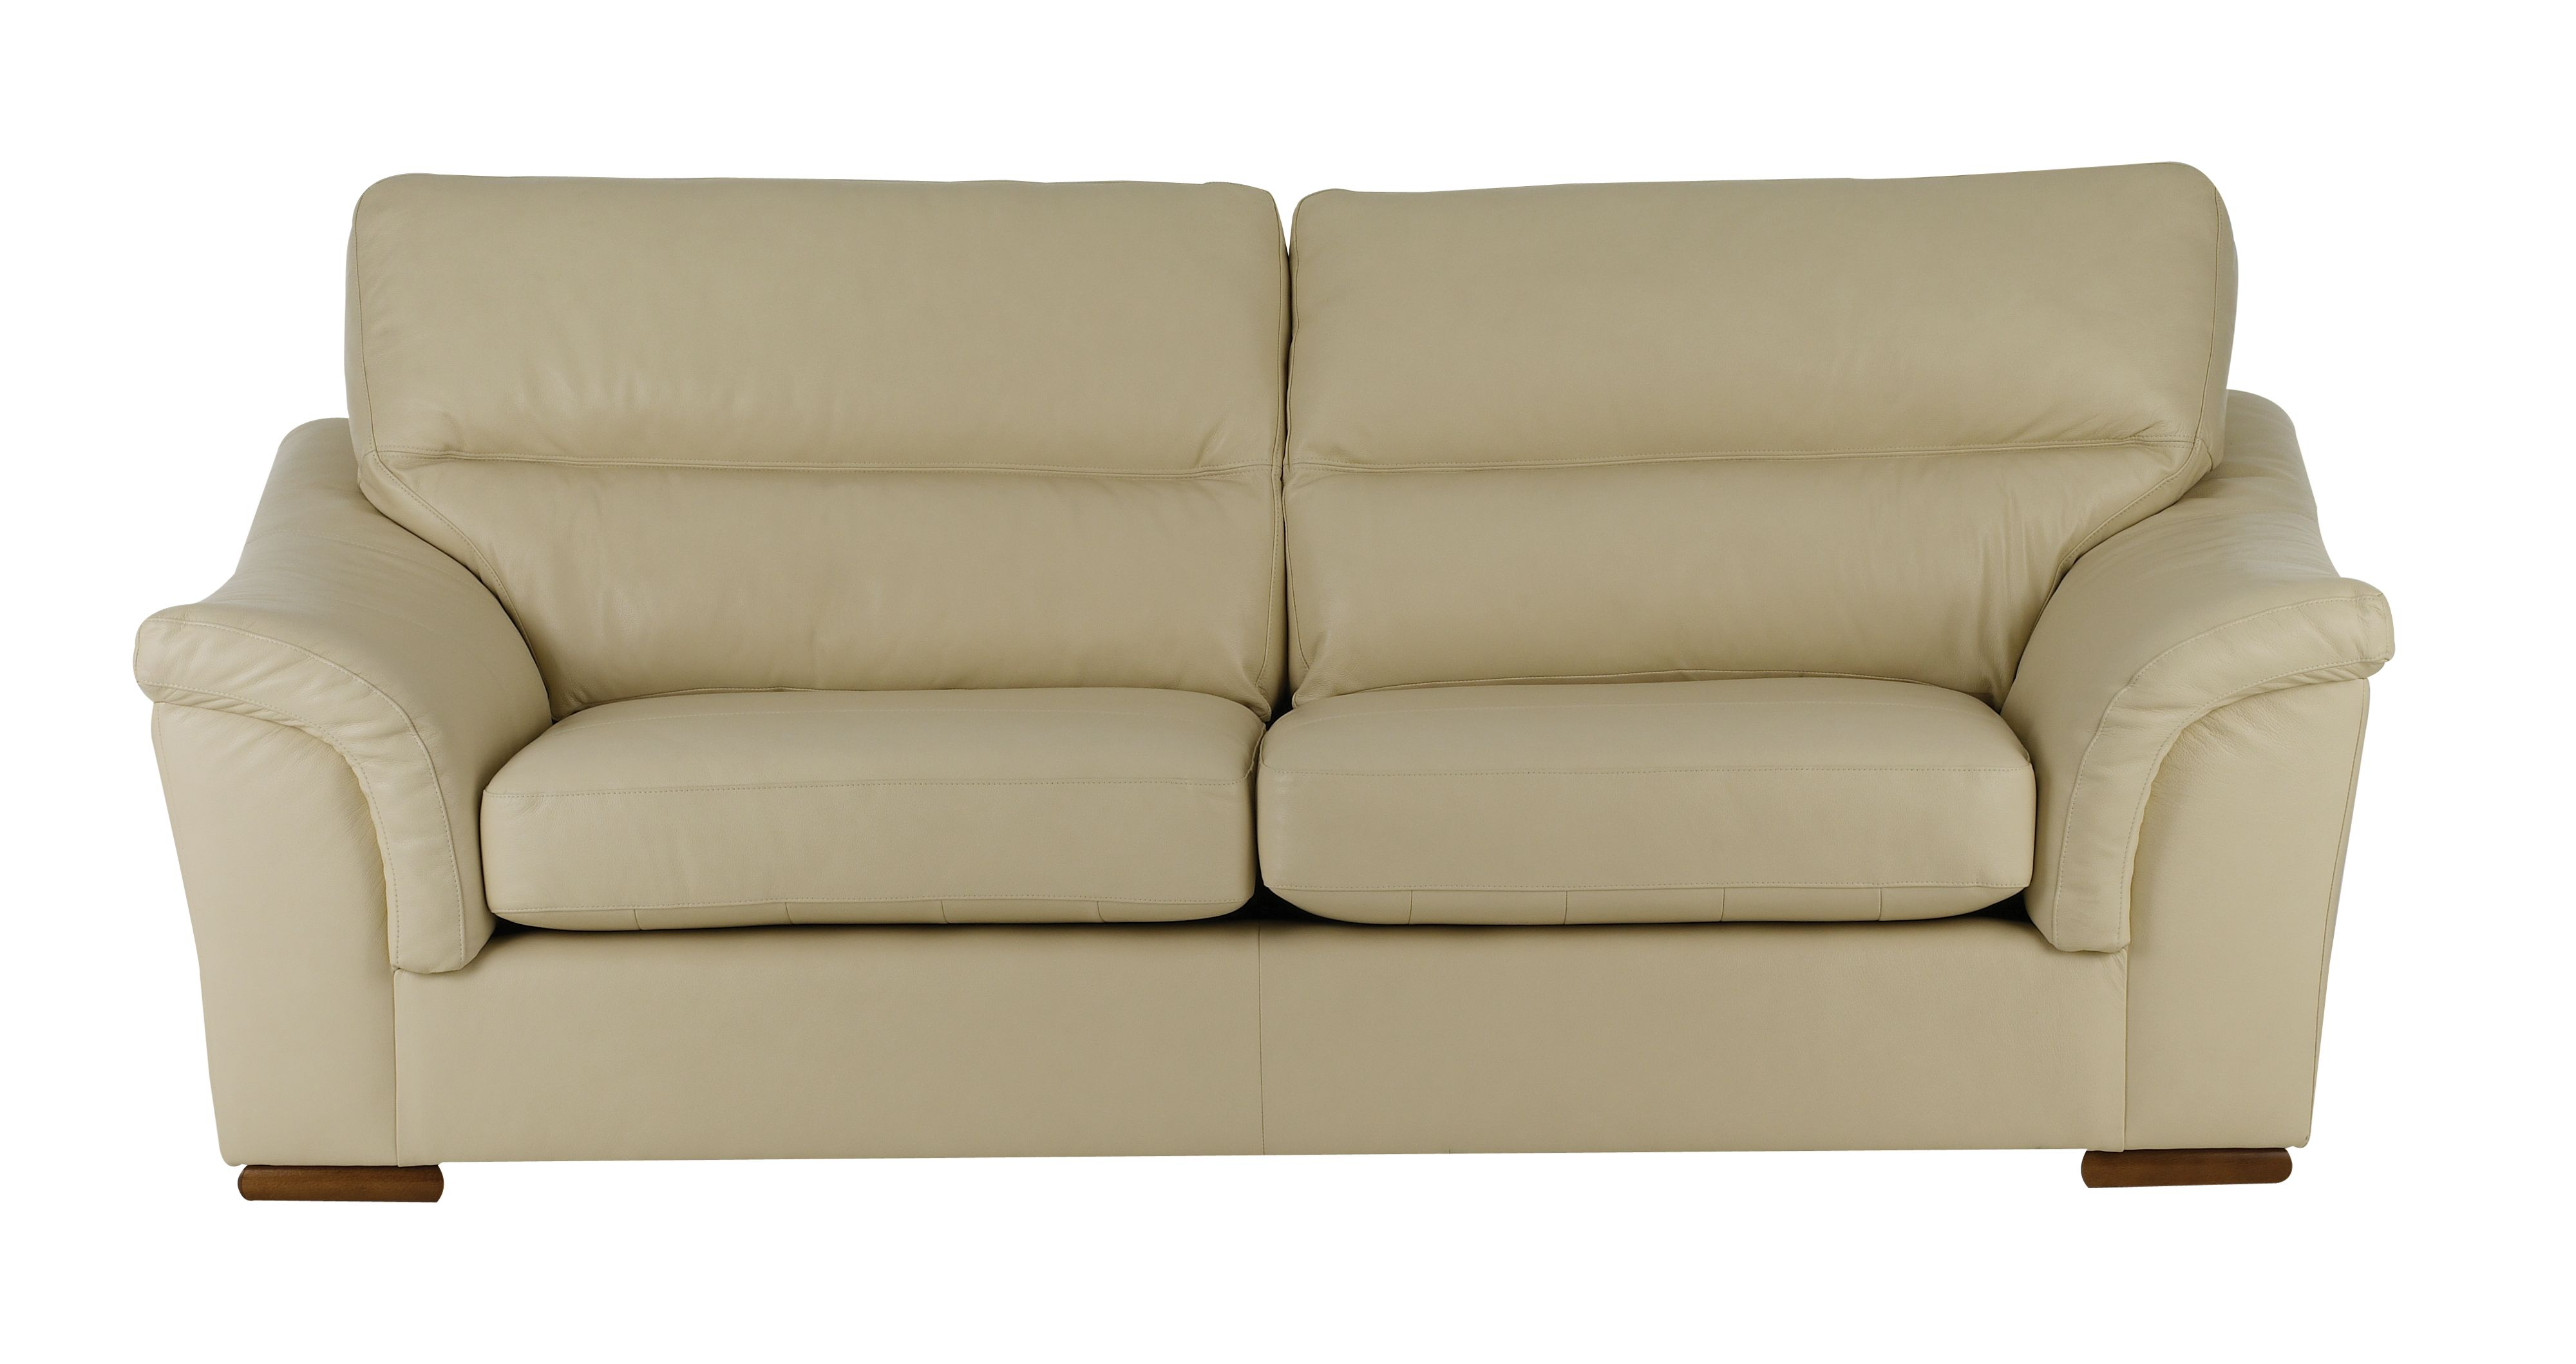 Linea luganno large two seater sofa review compare for Housse of frazer